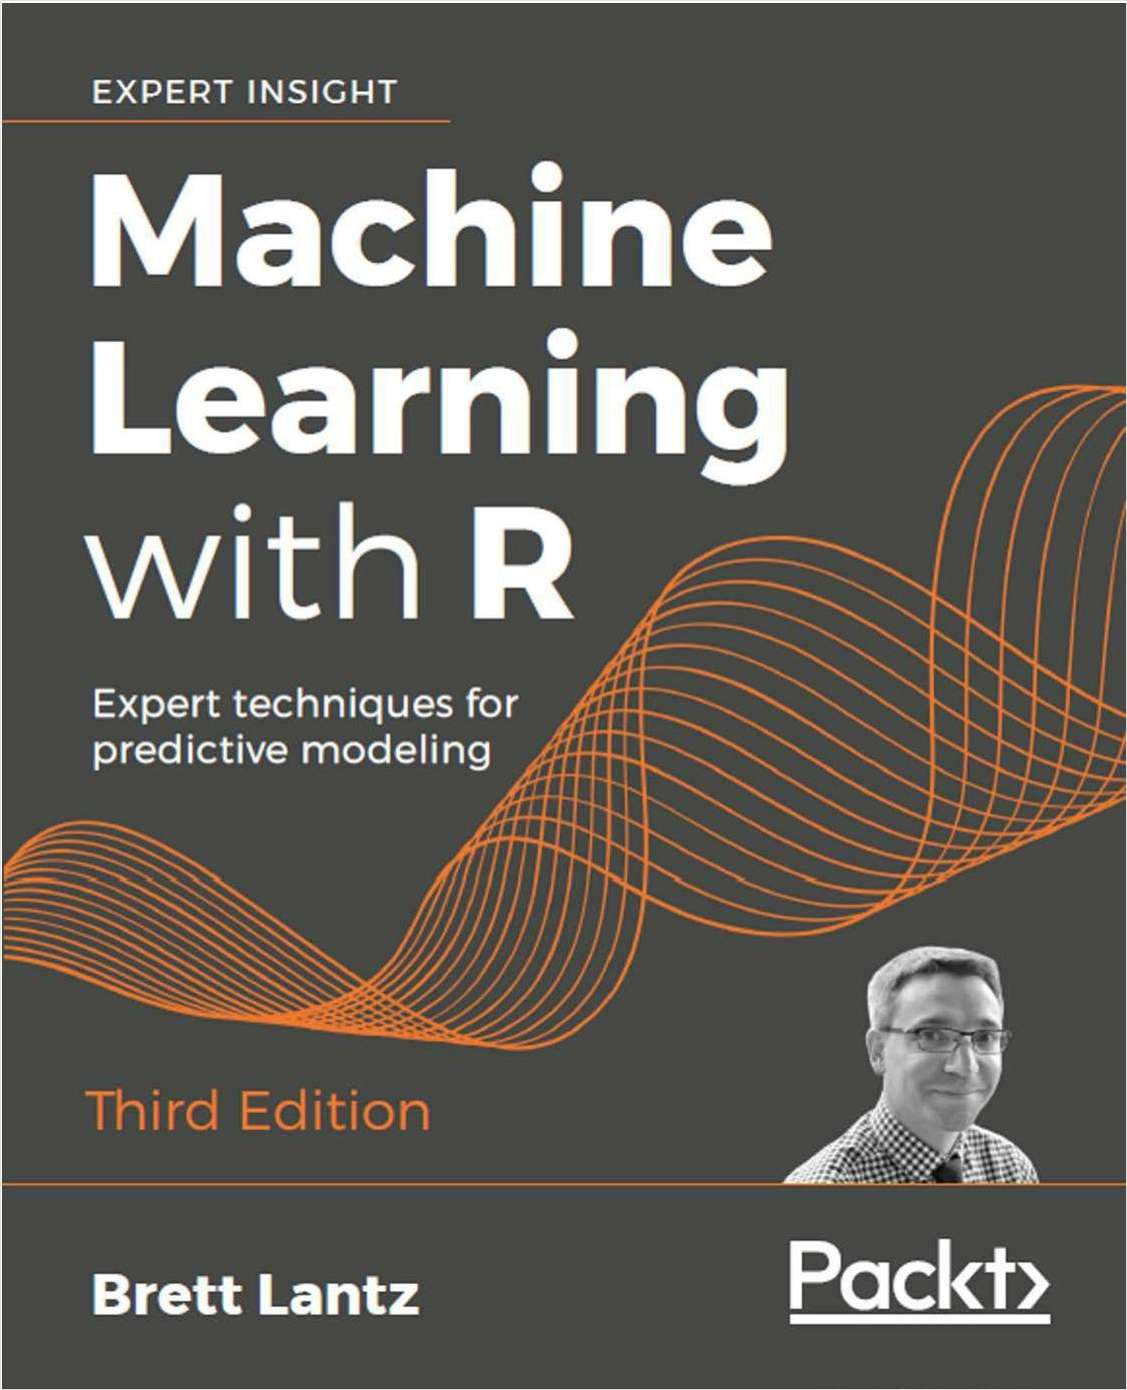 Machine Learning with R, Third Edition - Free Sample Chapters